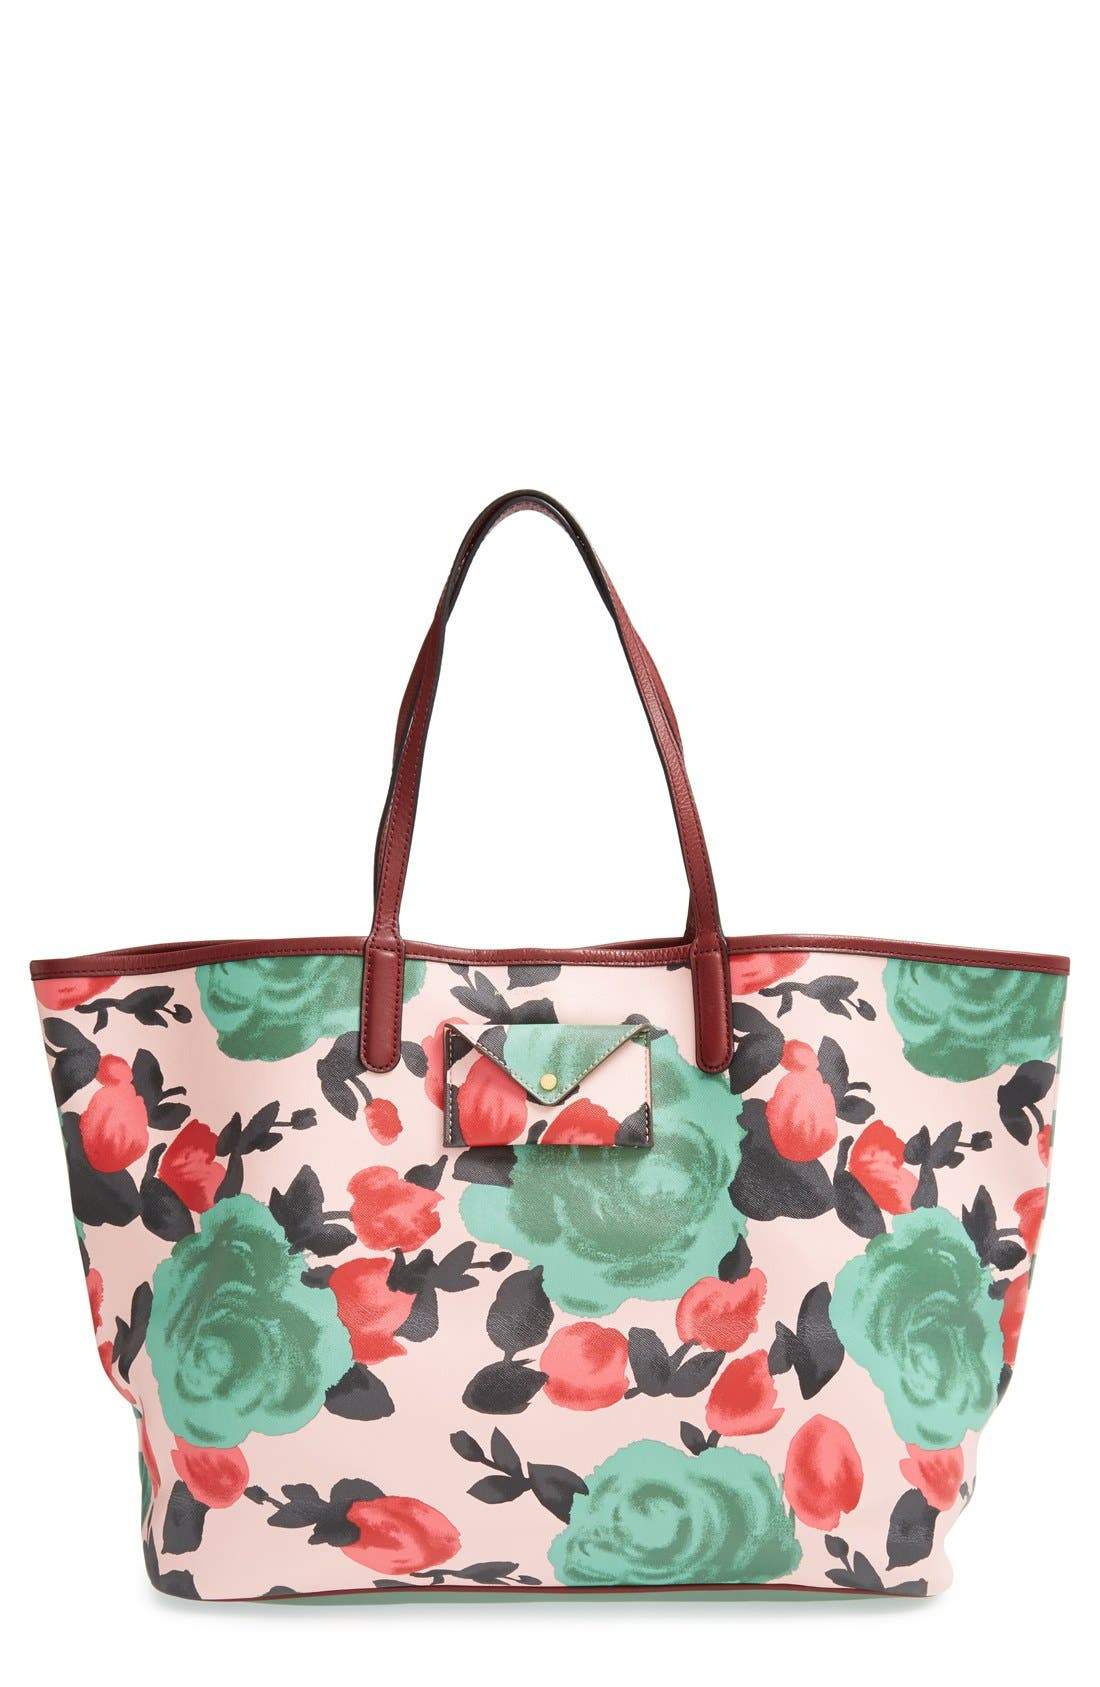 MARC JACOBS,                             MARC BY MARC JACOBS Large Beach Tote,                             Main thumbnail 1, color,                             650